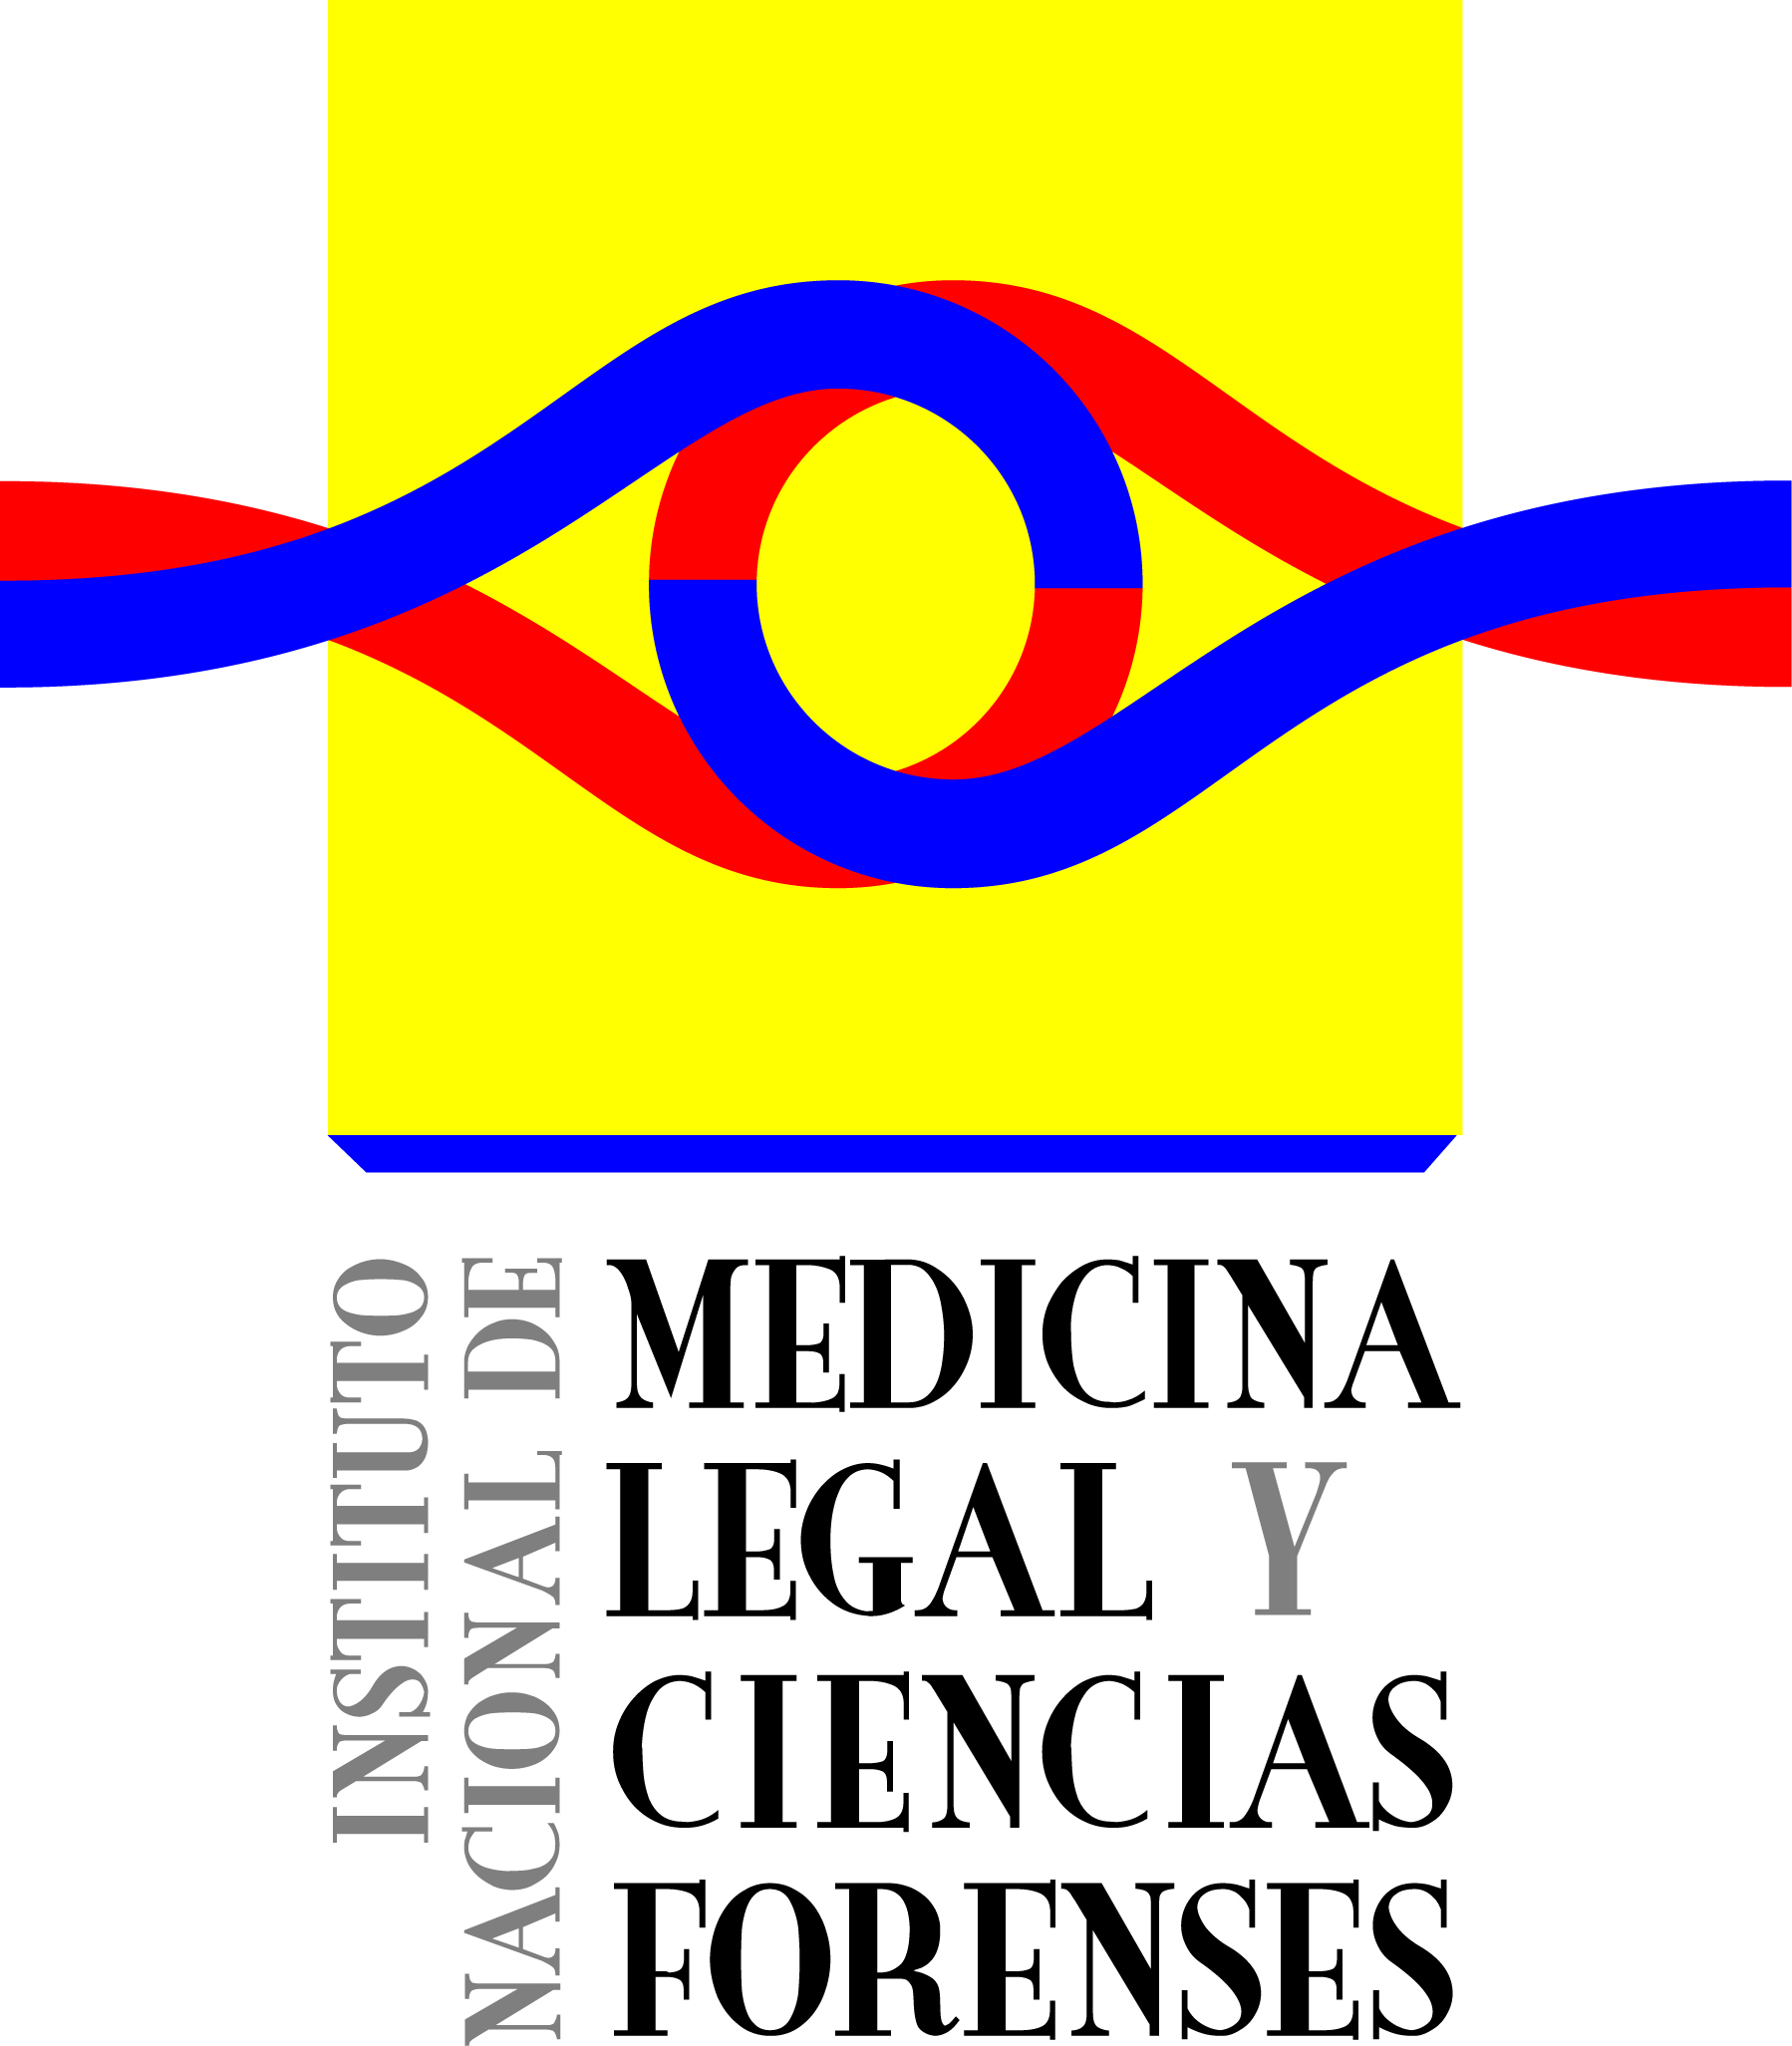 https://revistas.ucc.edu.co/html_revistas/ImgRev/logo-medicina-legal.jpg